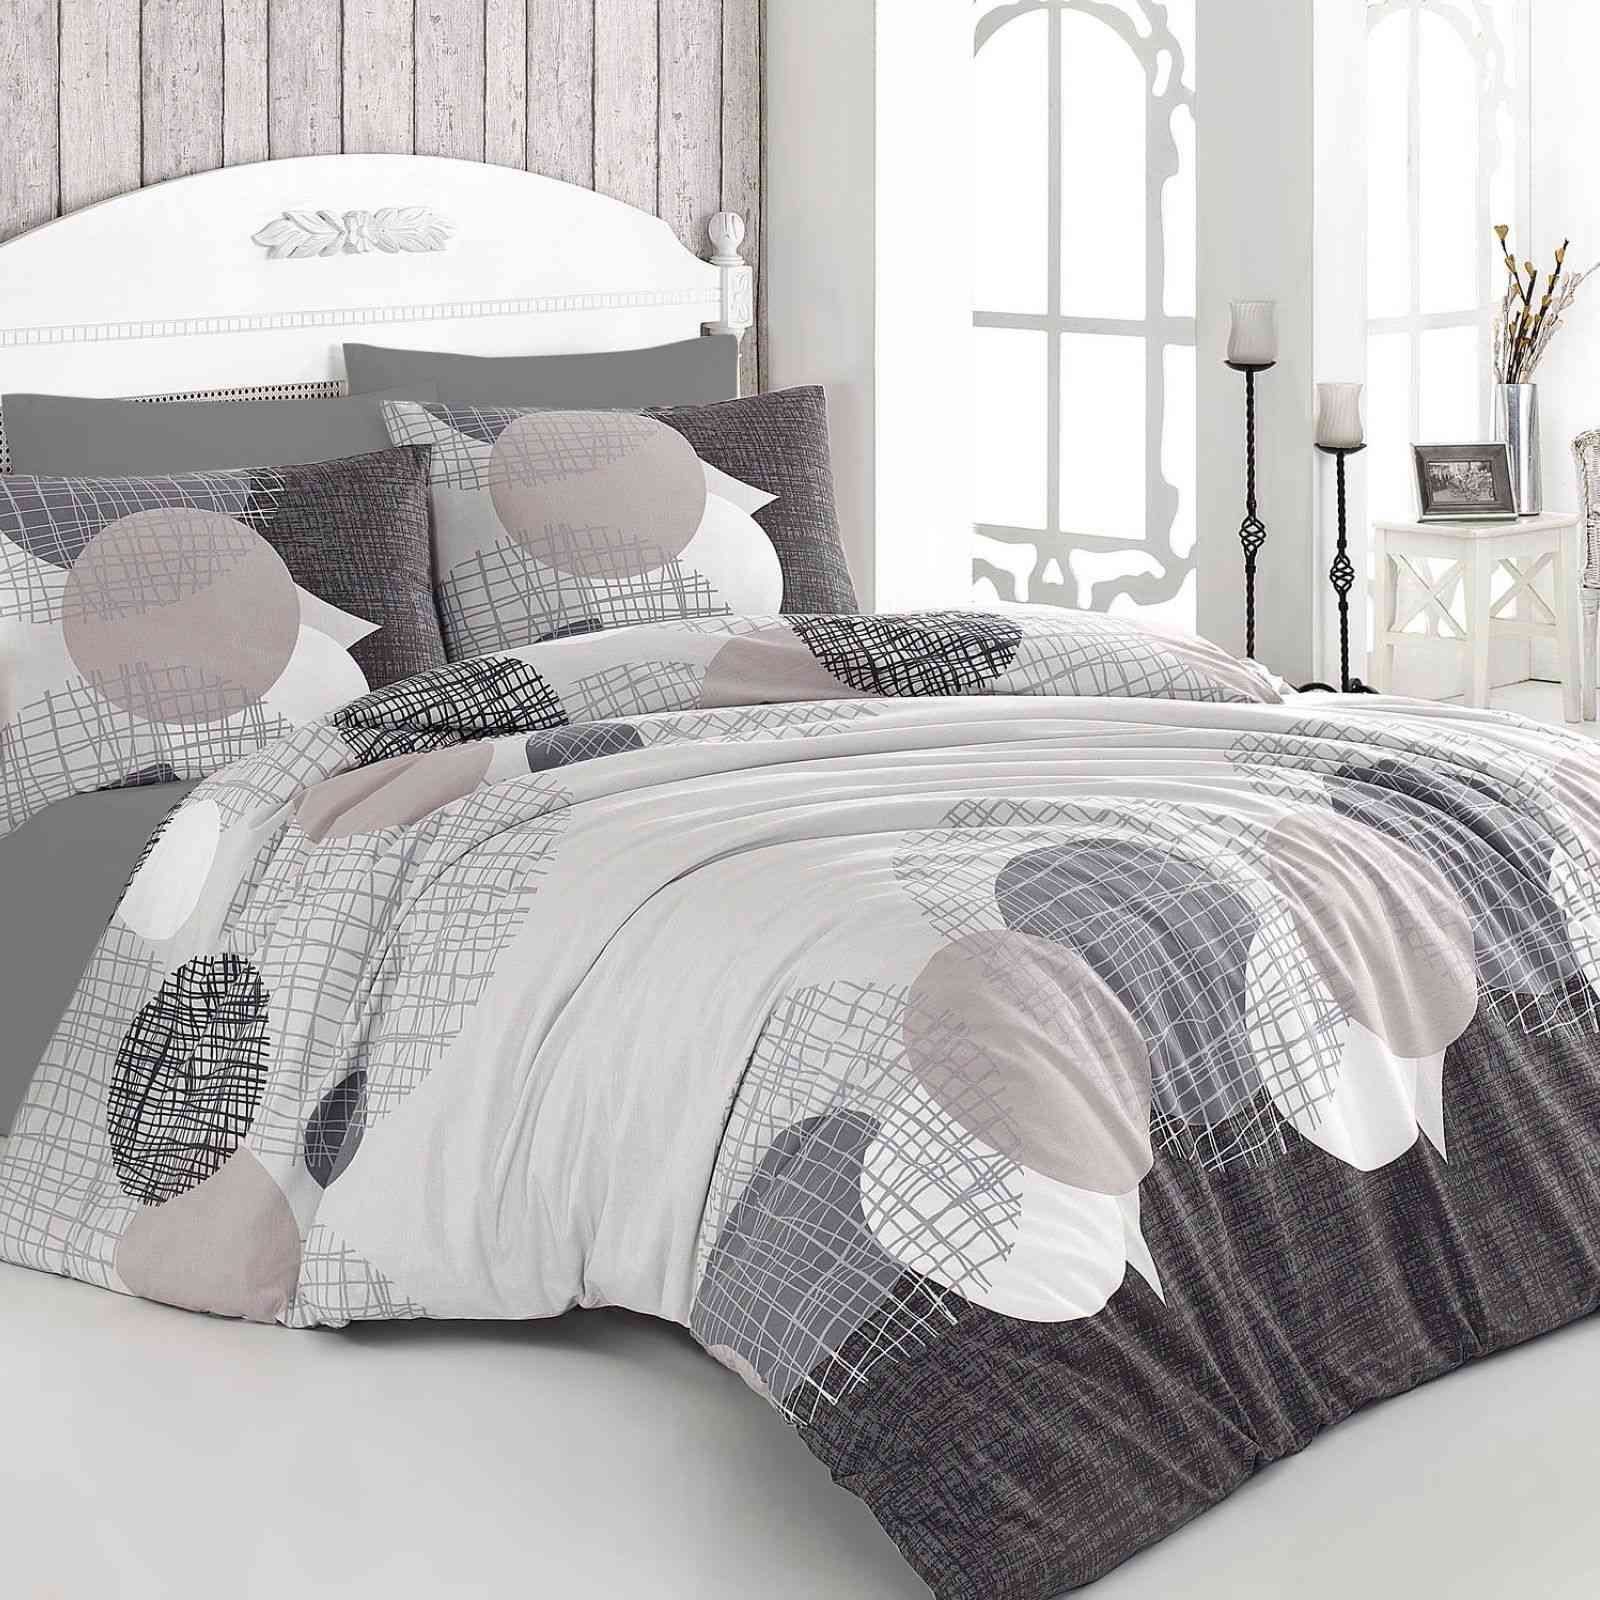 nazenin home jadore parure de lit blanc beige et gris brandalley. Black Bedroom Furniture Sets. Home Design Ideas